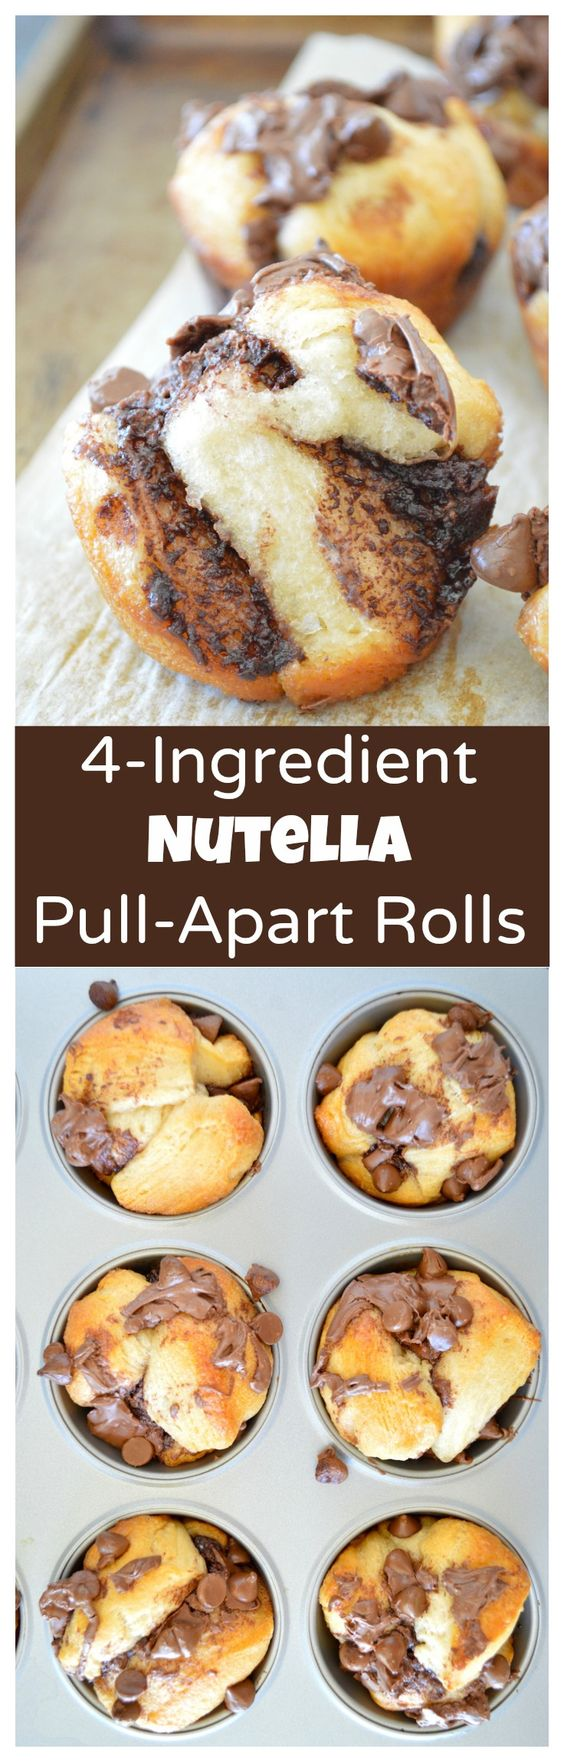 ... Pull-Apart Rolls – 4-ingredient, buttery, fluffy pull-apart rolls